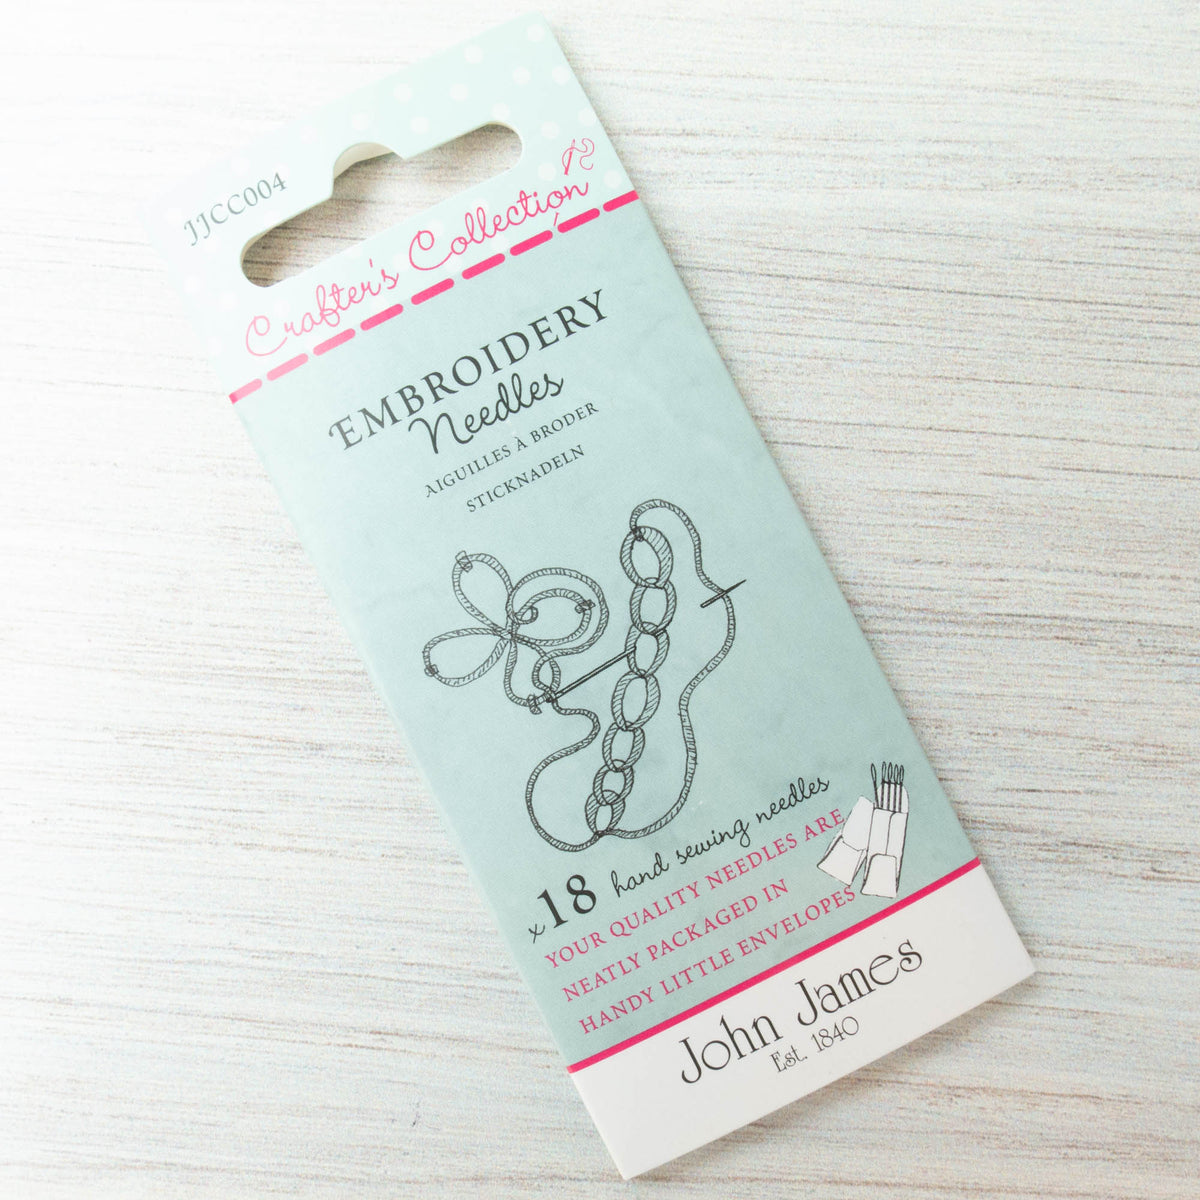 John James Crafters Collection Embroidery Needles